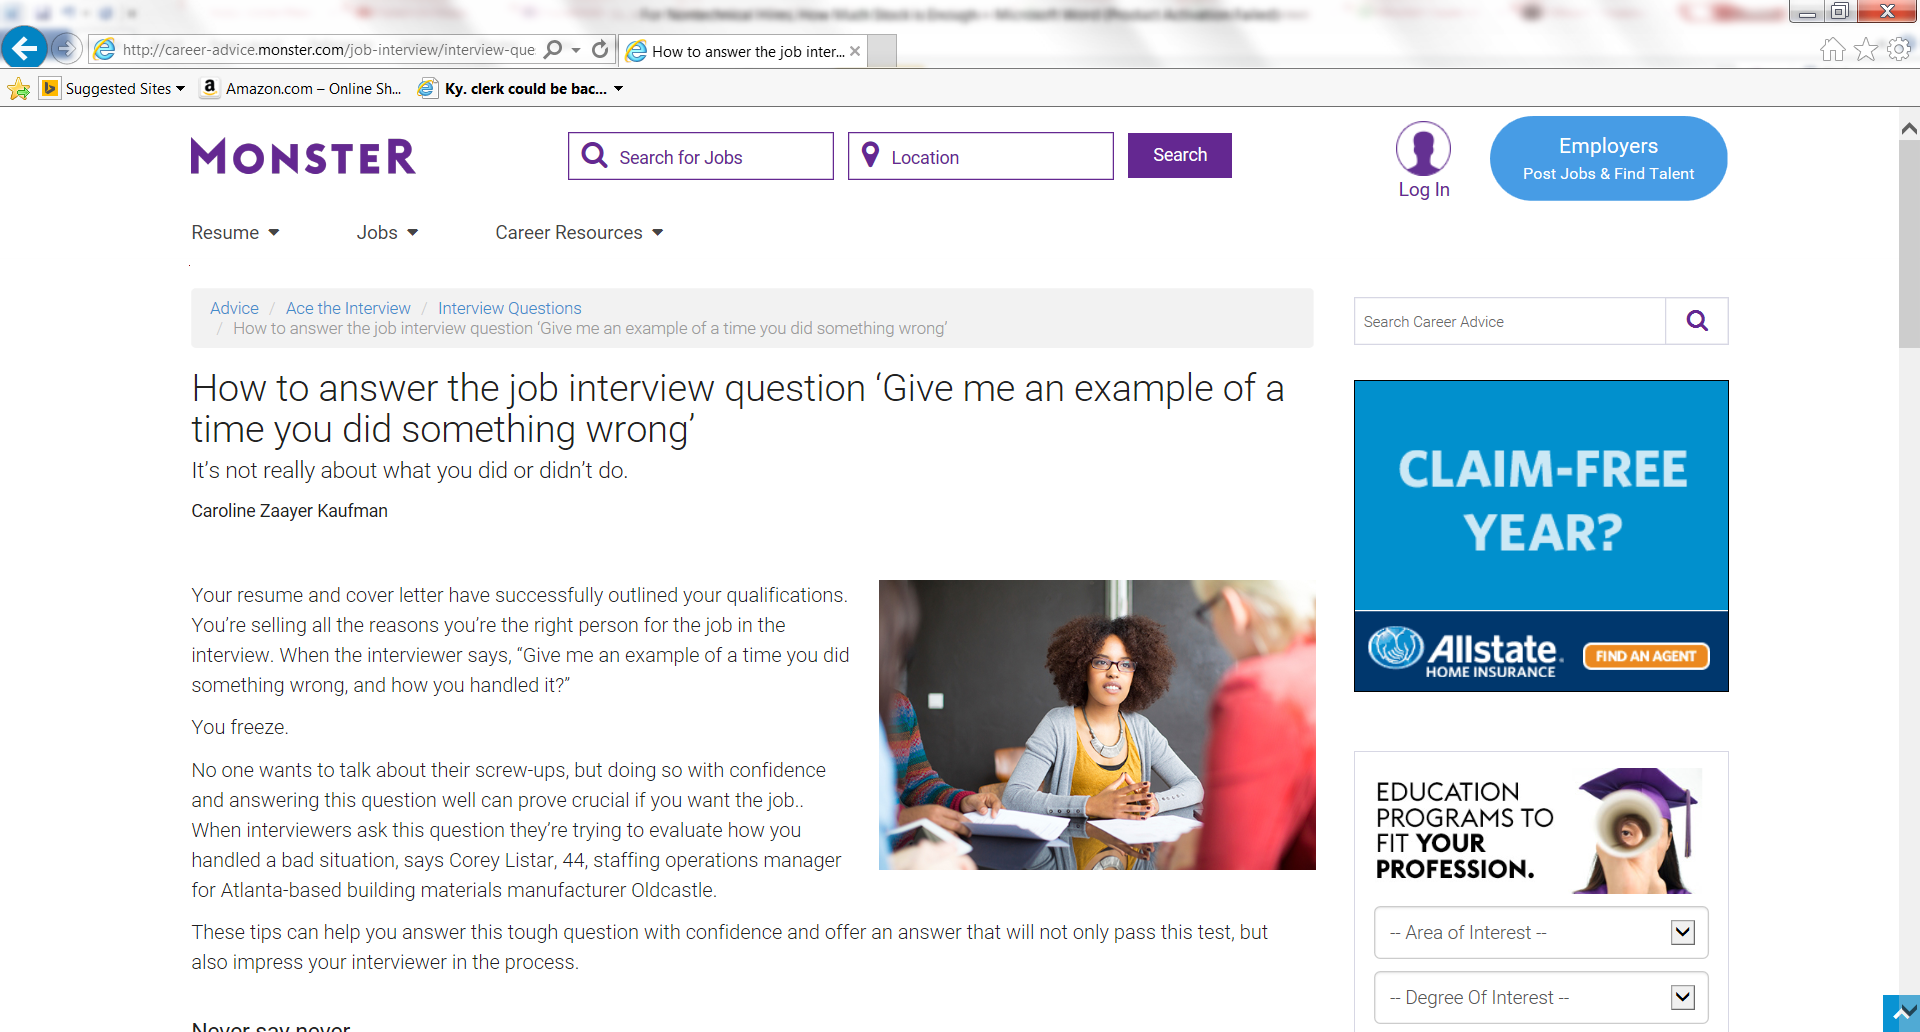 How To Answer The Job Interview Question Give Me An Example Of A